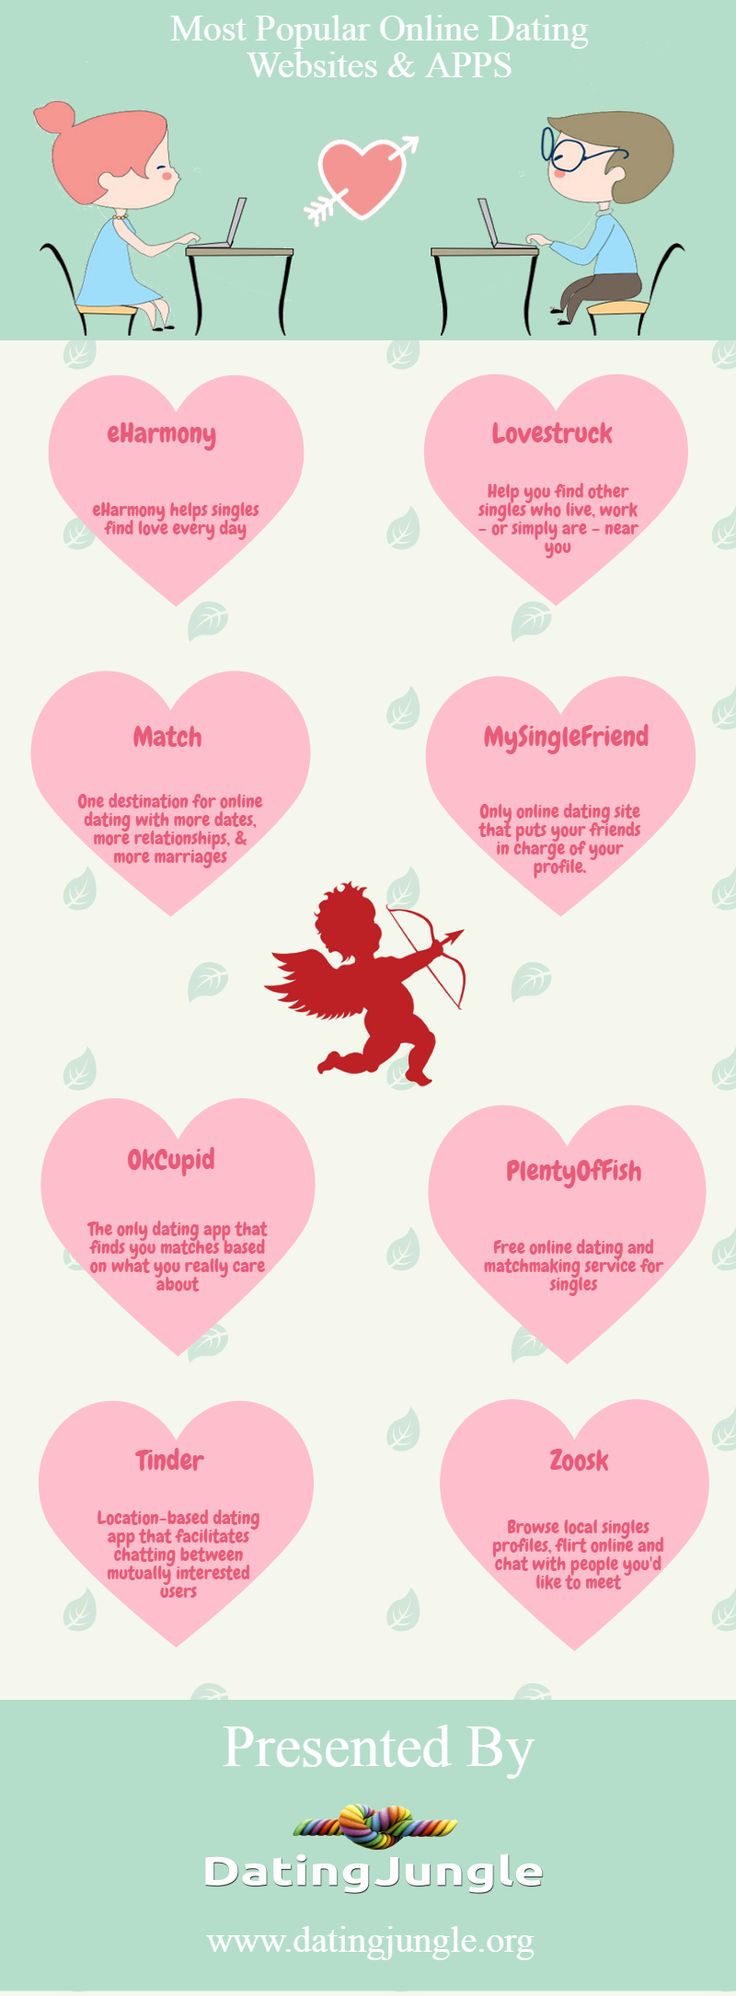 There are 8 major top most popular online dating websites in UK. You can make comparisons and select the most genuine one.